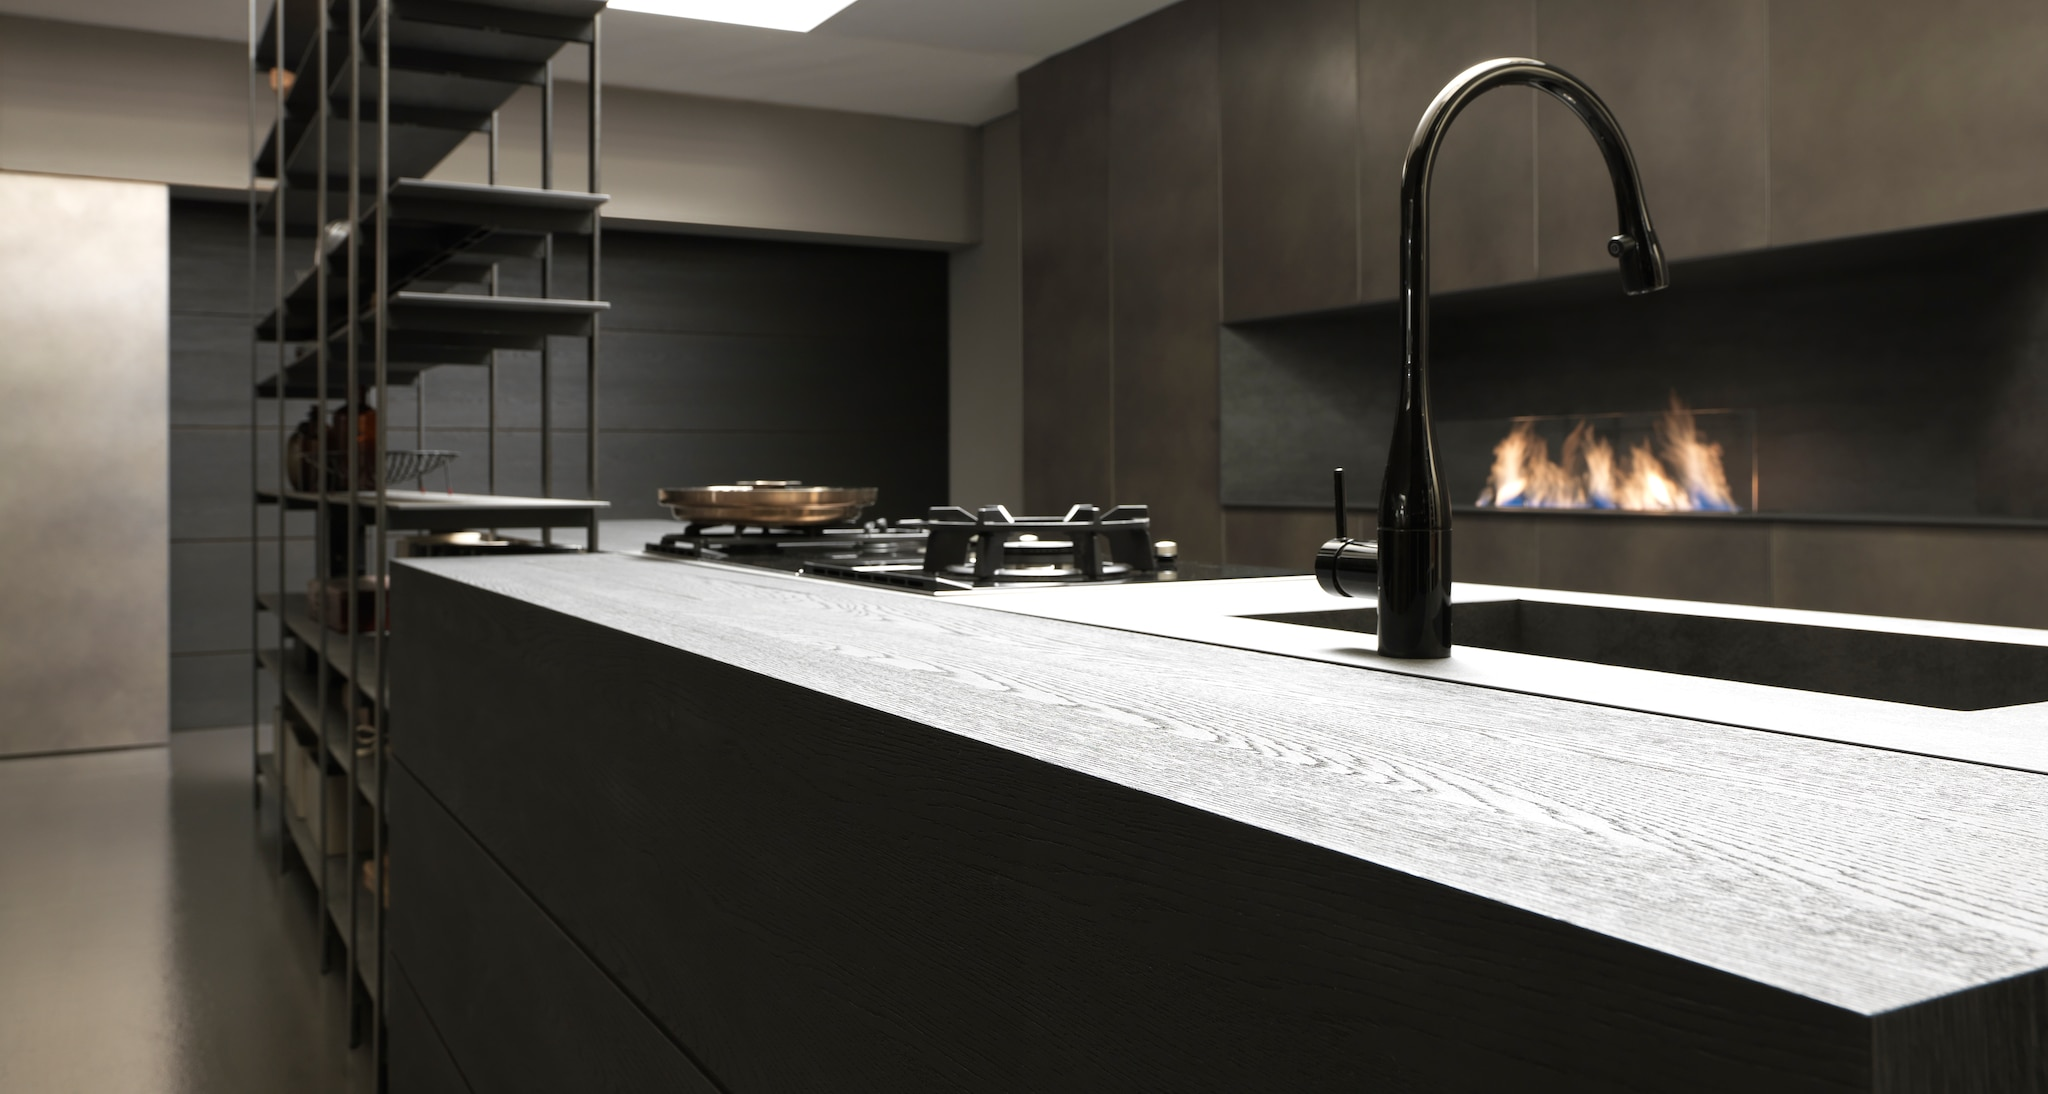 Awesome Top Della Cucina Images - Design & Ideas 2017 - candp.us